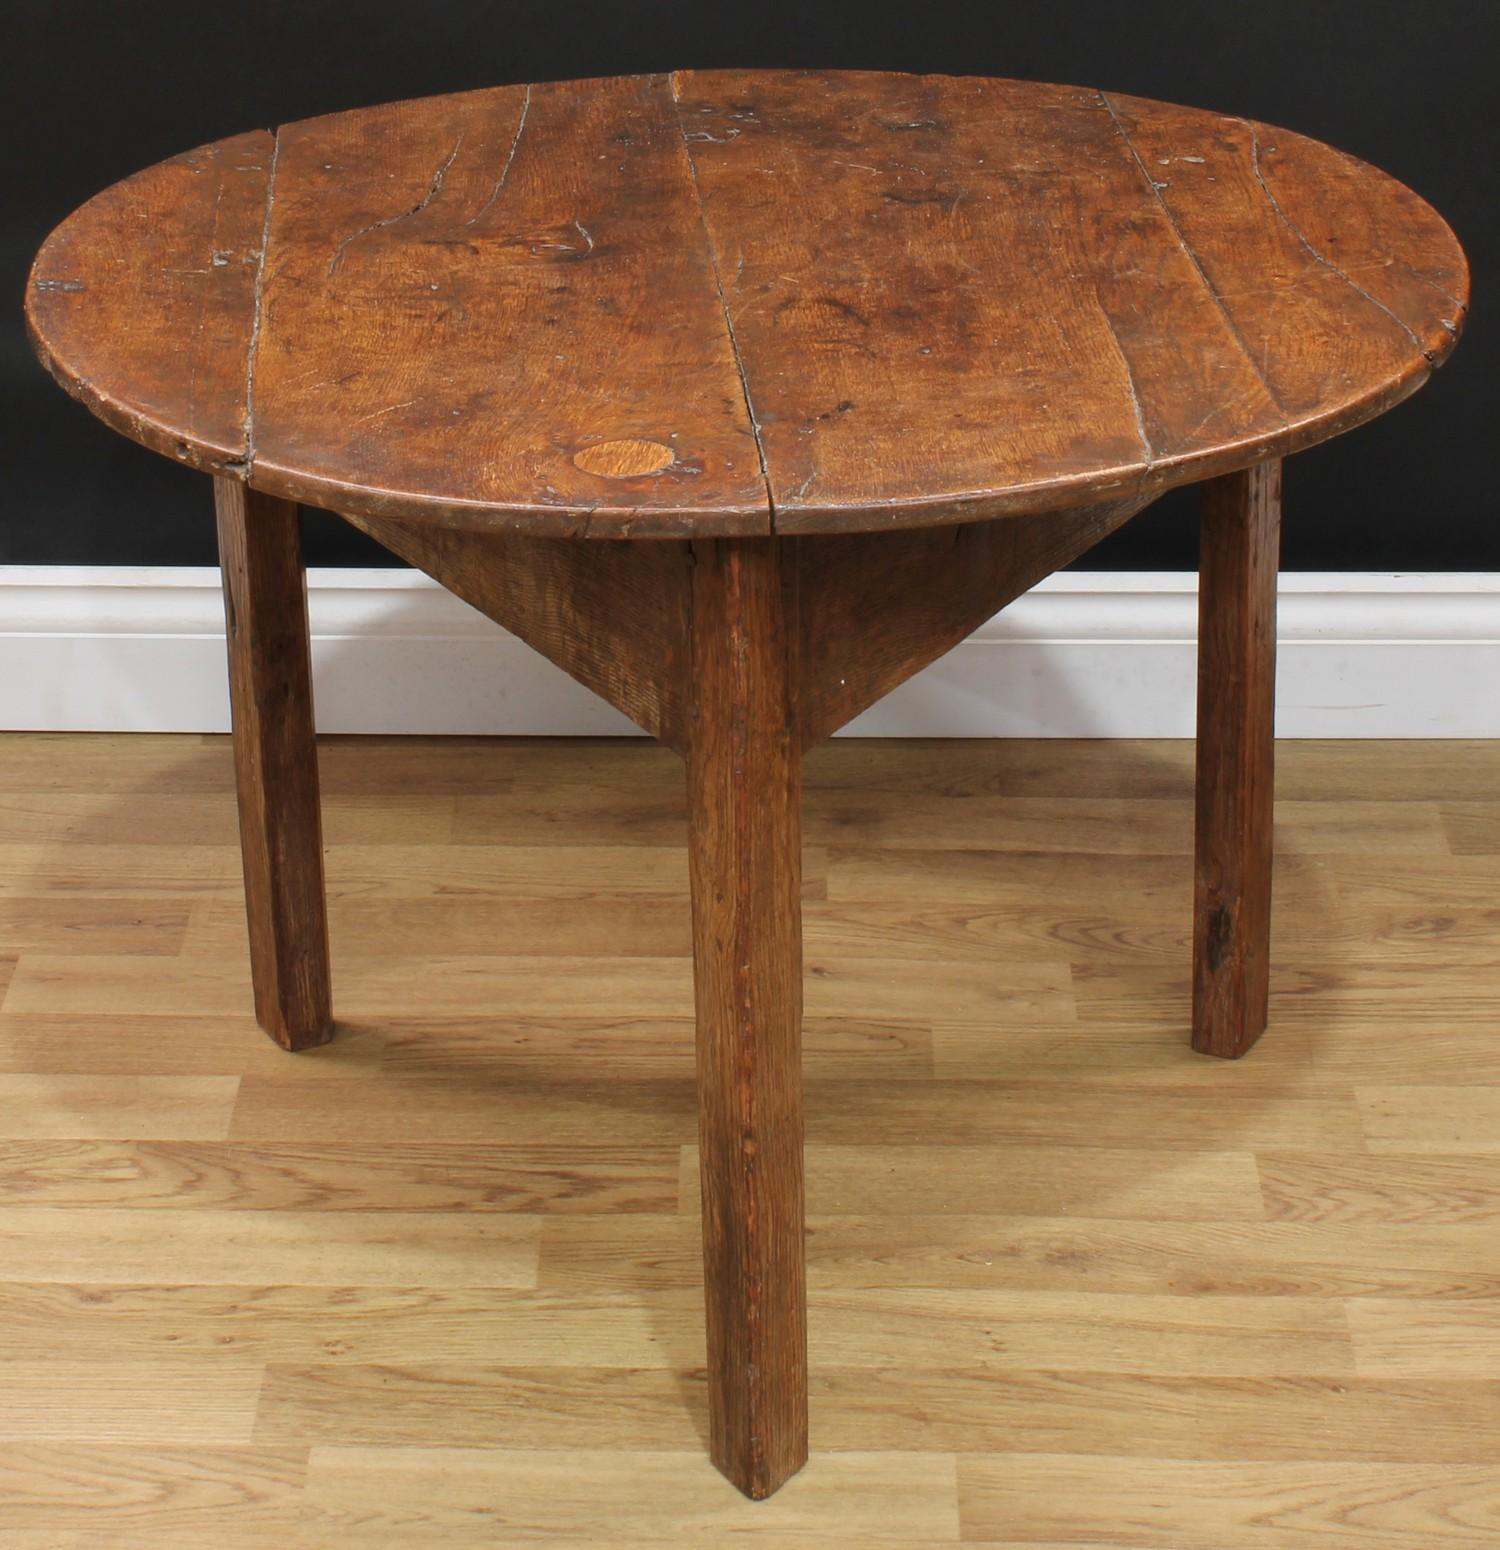 A 19th century oak cricket table, circular top, chamfered legs, 55.5cm high (reduced), 77cm diameter - Image 2 of 2